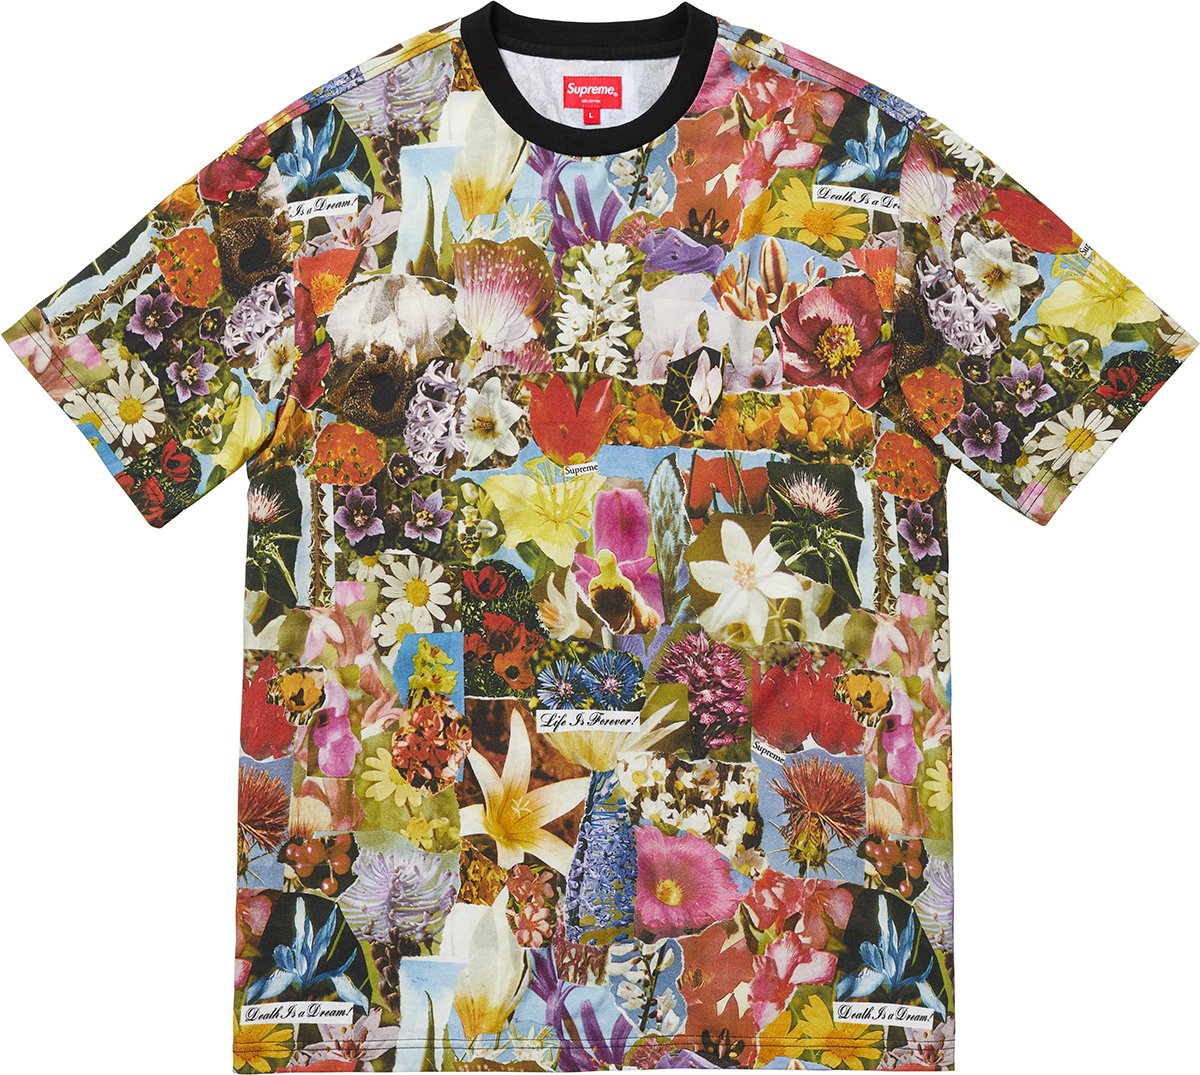 supreme-18aw-fall-winter-dream-s-s-top